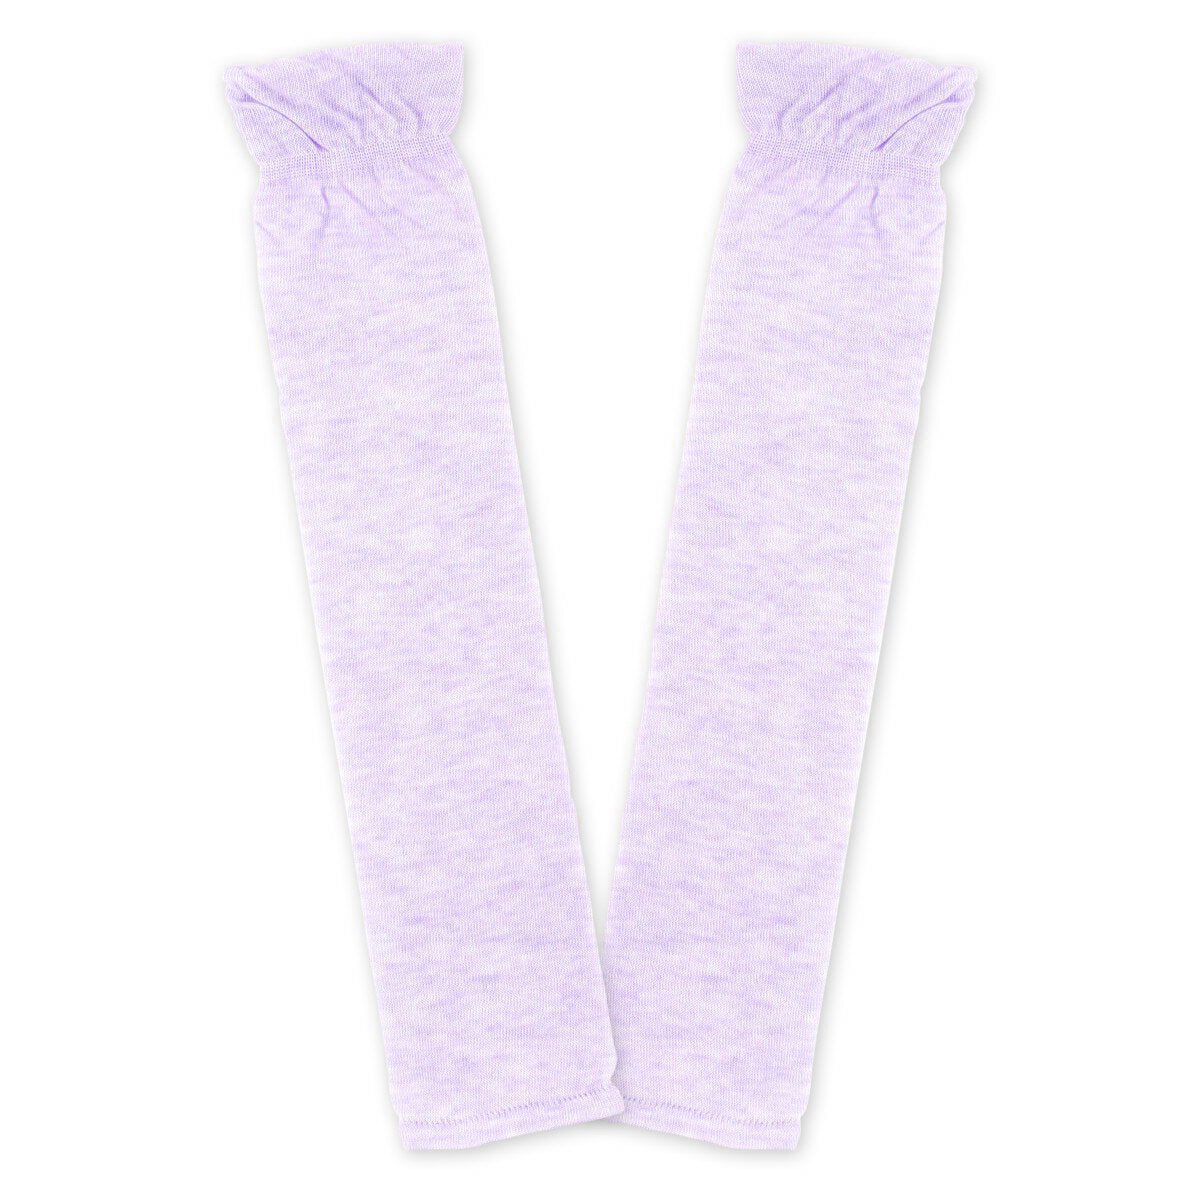 Prevent-the-chill Legwarmers | Lavender - CHERRYSTONE